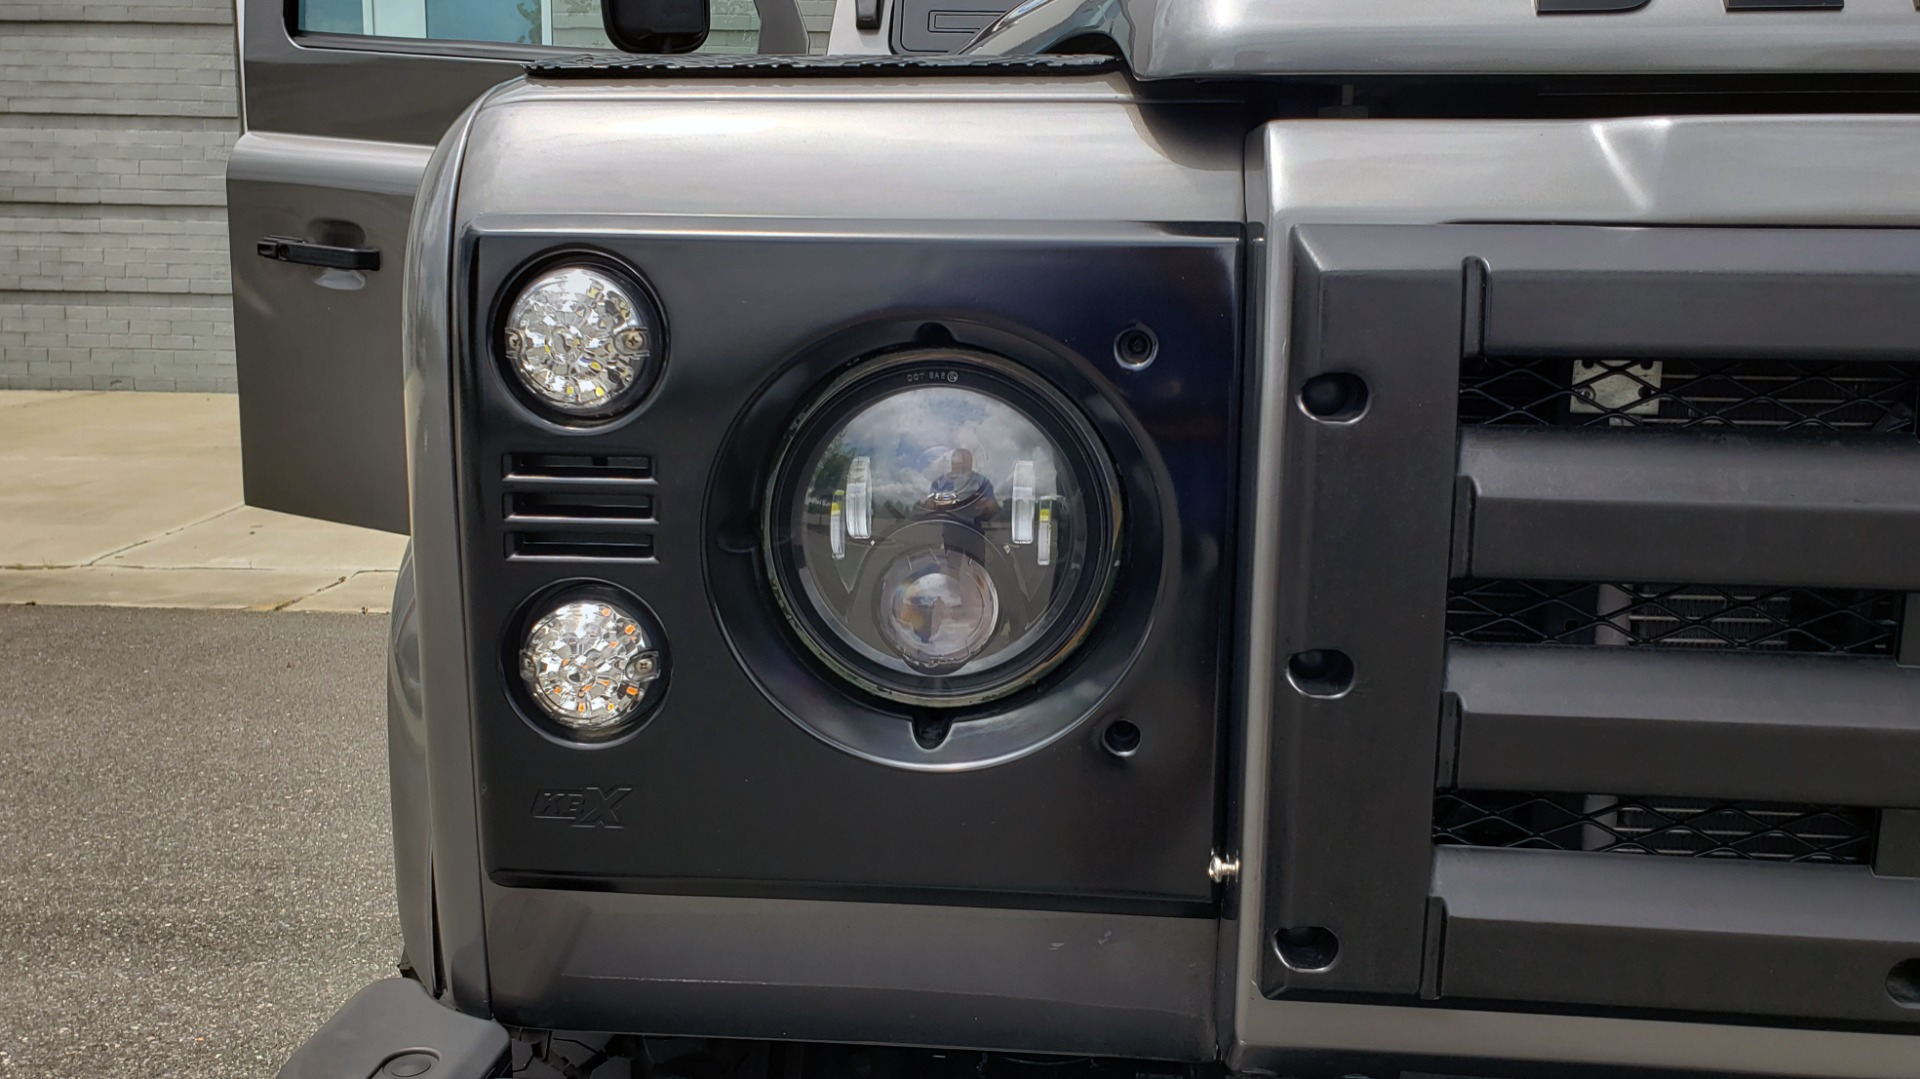 Used 1988 Land Rover DEFENDER 110 CUSTOM 4X4 / LS V8 / PUSH BUTTON AUTO / LEATHER / ROOF RACK for sale $147,888 at Formula Imports in Charlotte NC 28227 40